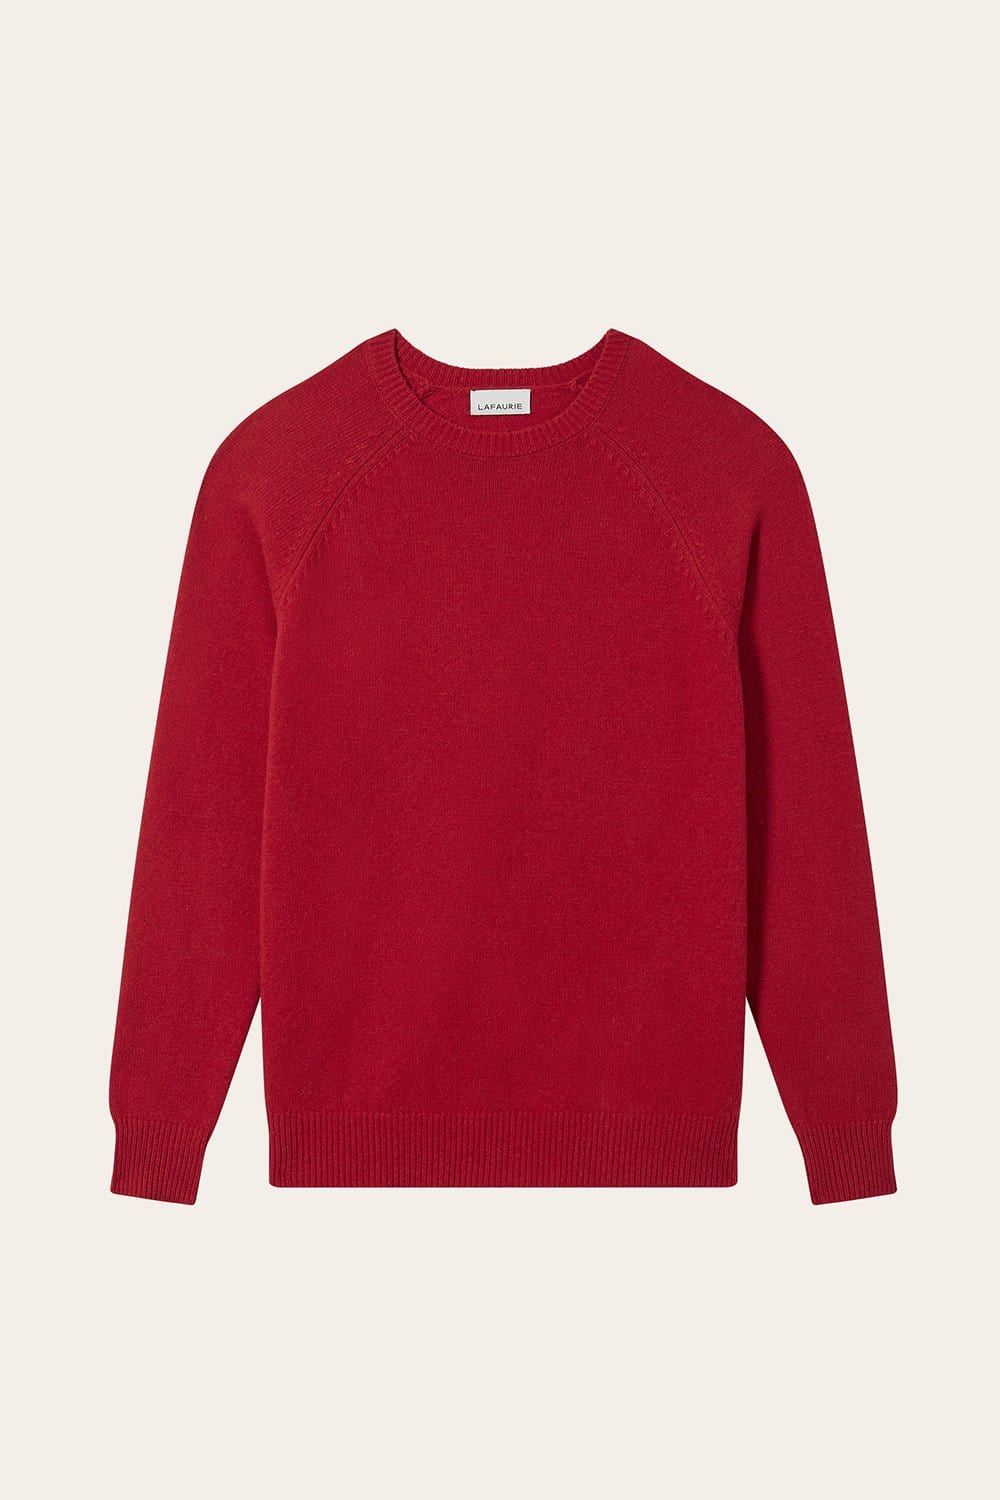 Pull Topaze - Rouge - LAFAURIE